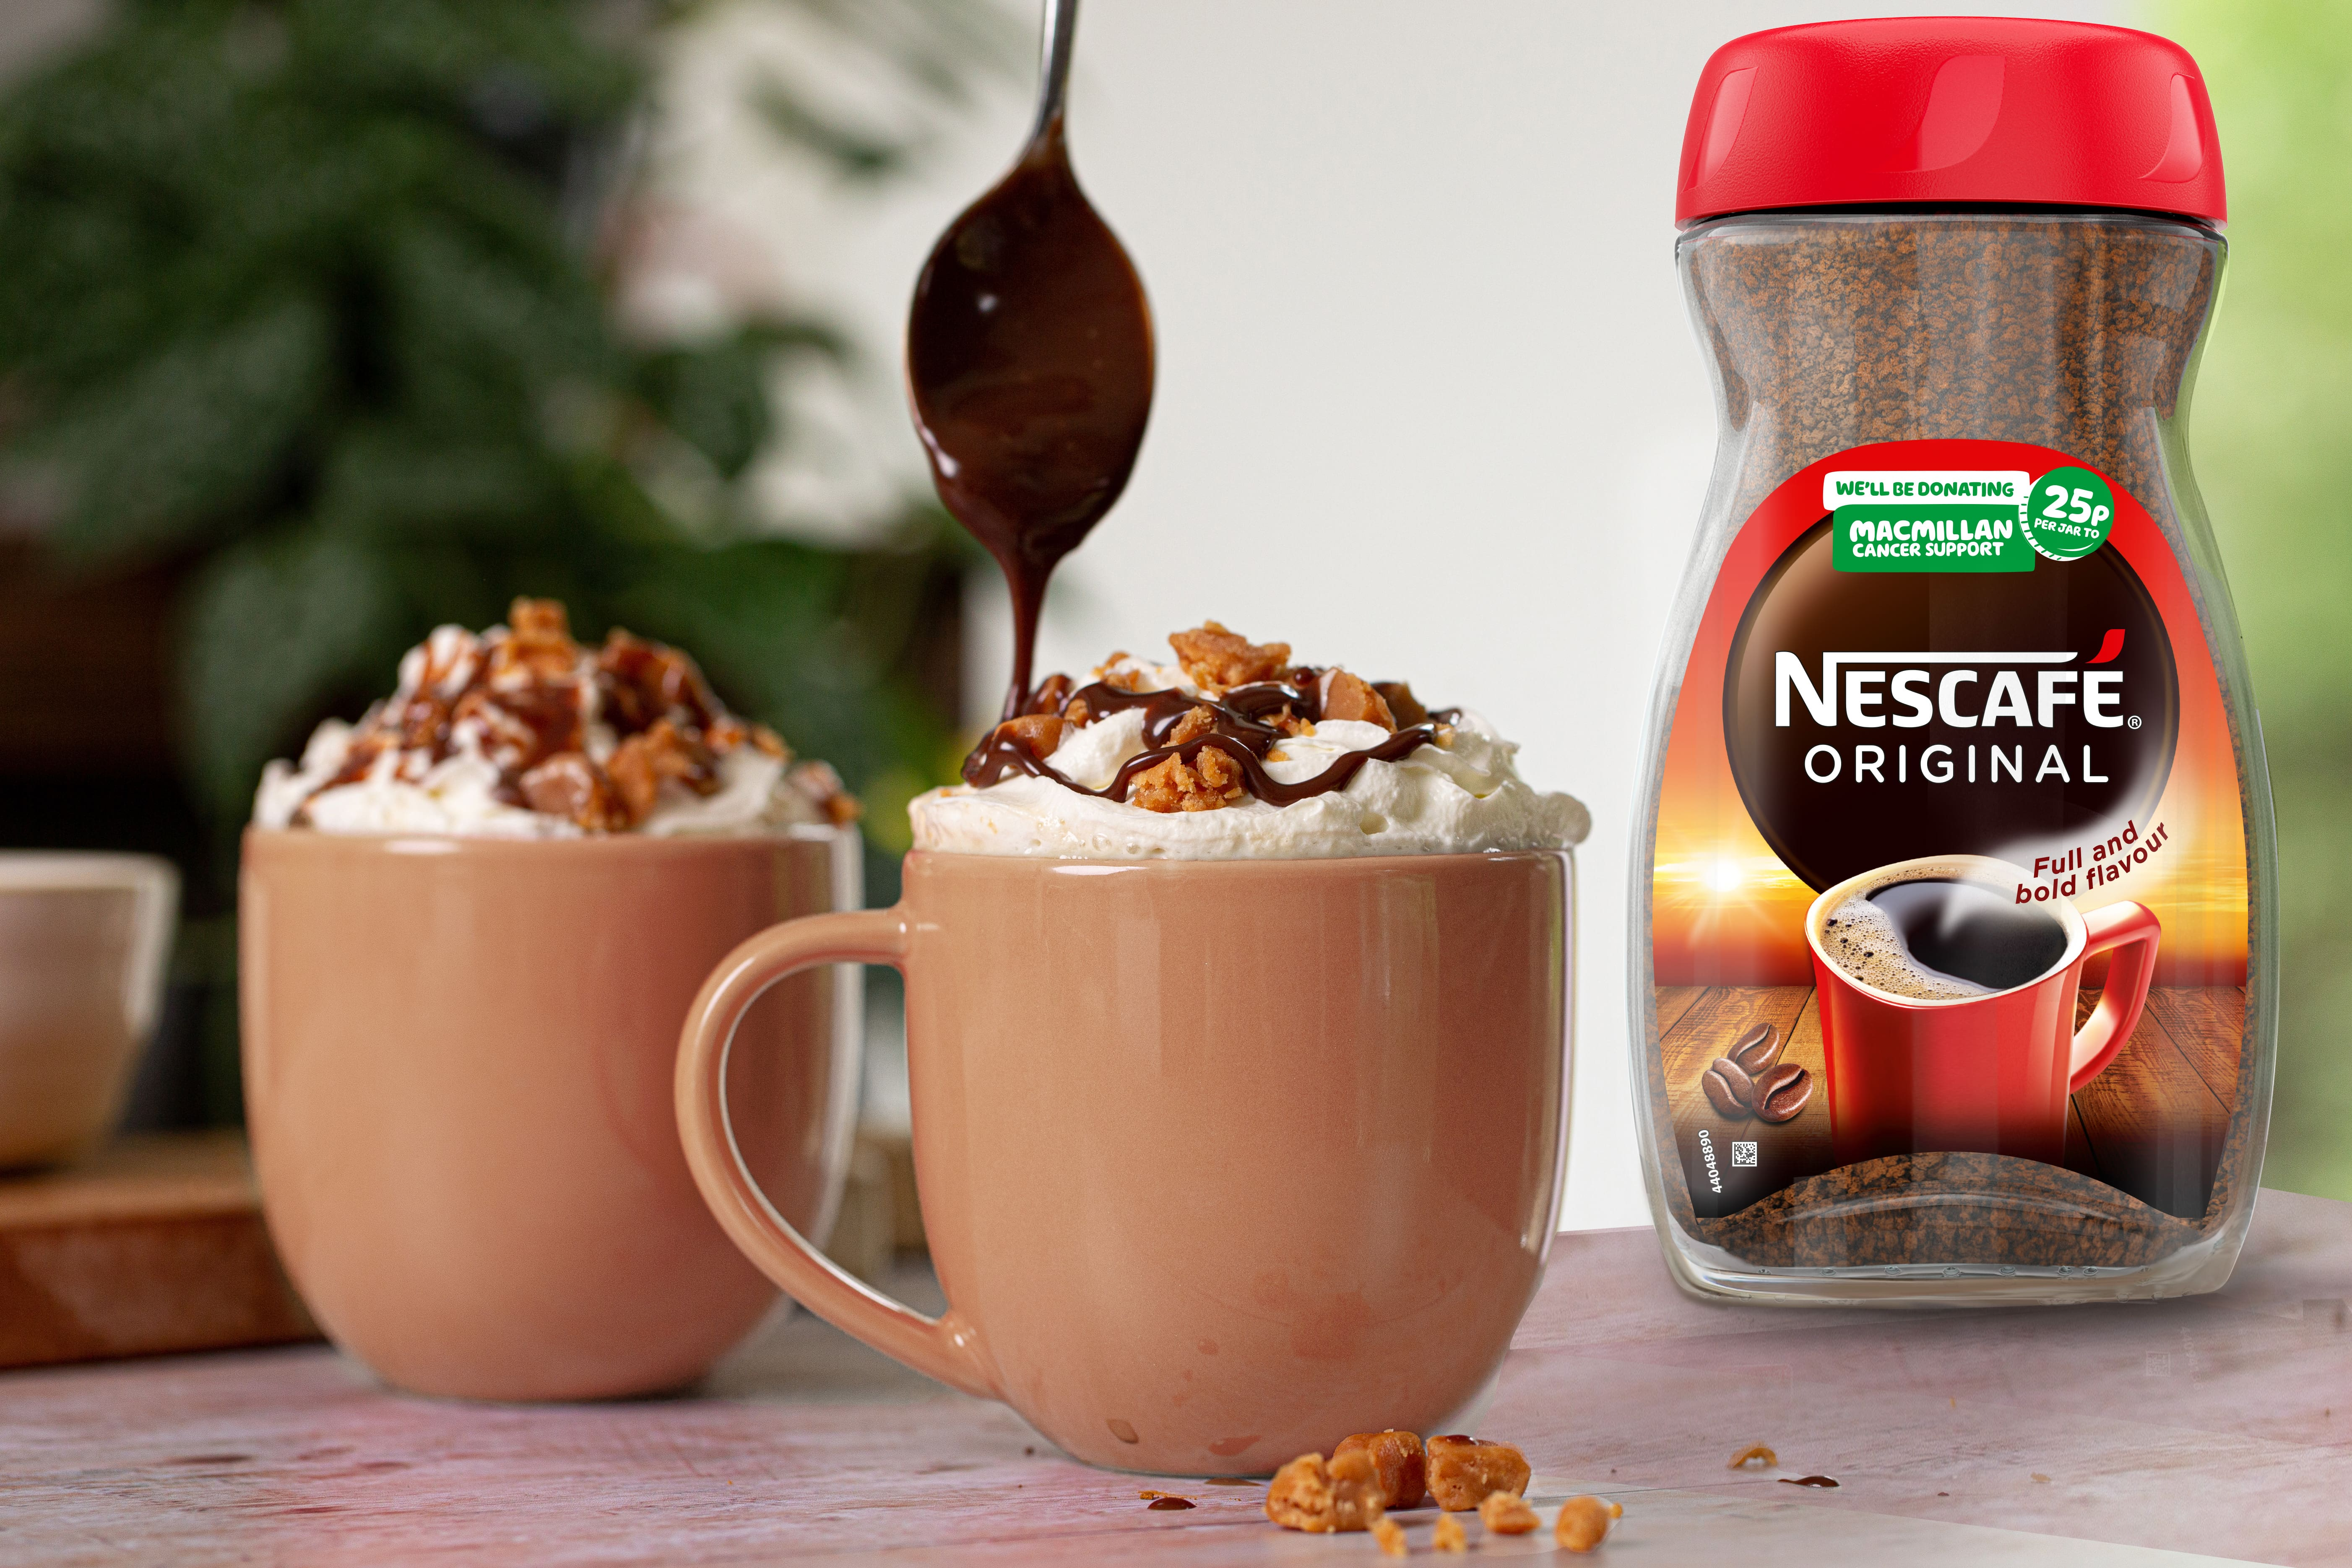 Two coffee mugs with creamy topping. One mug has a teaspoon drizzling chocolate on it. Next to the mugs is a Nescafe Original jar of coffee.